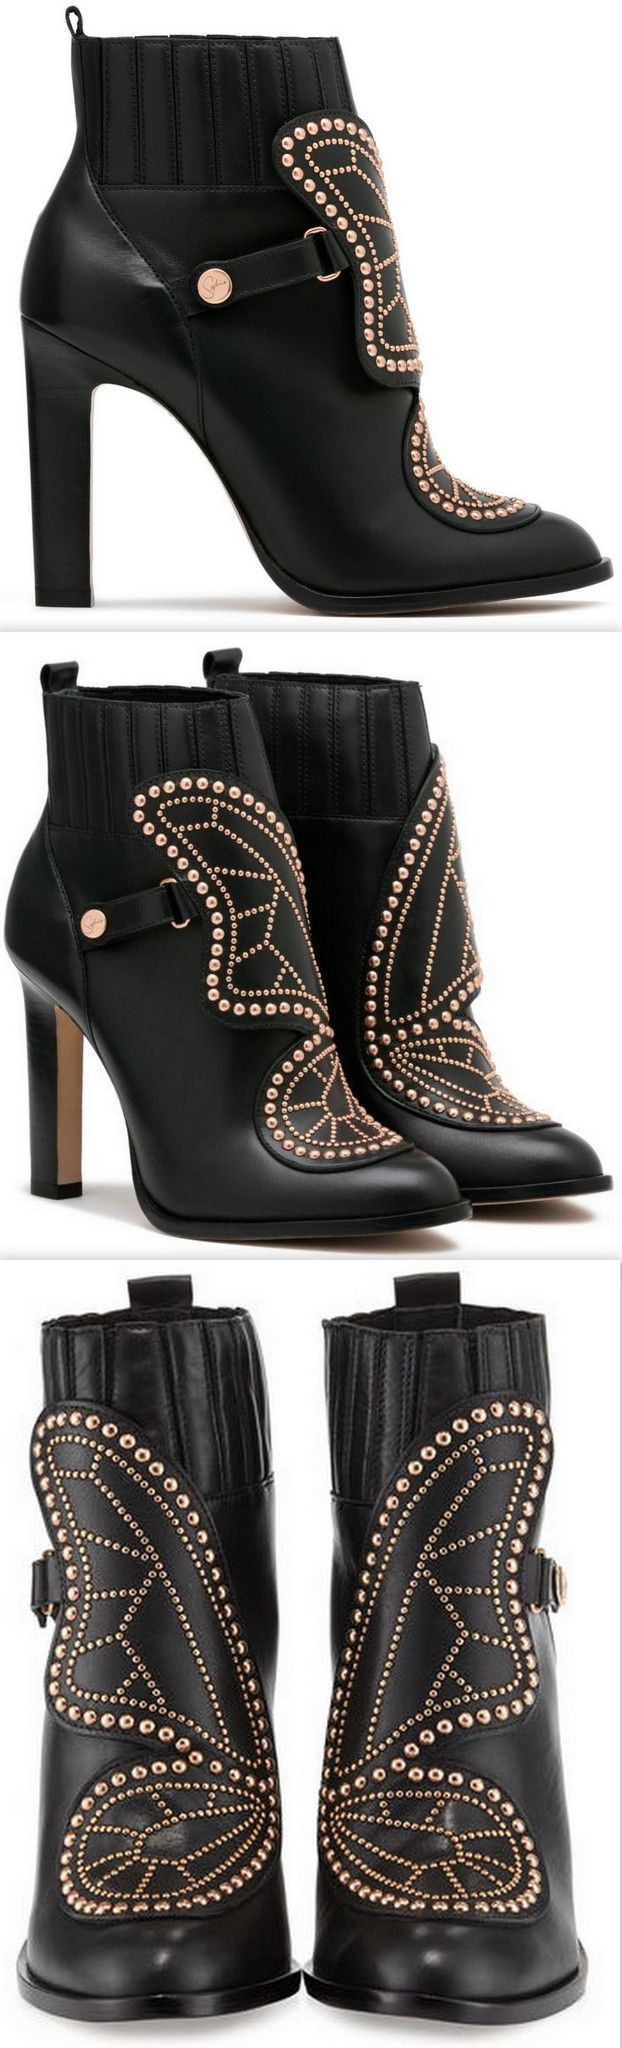 'Karina' Butterfly Studded Leather High-Heel Ankle Boots-Black